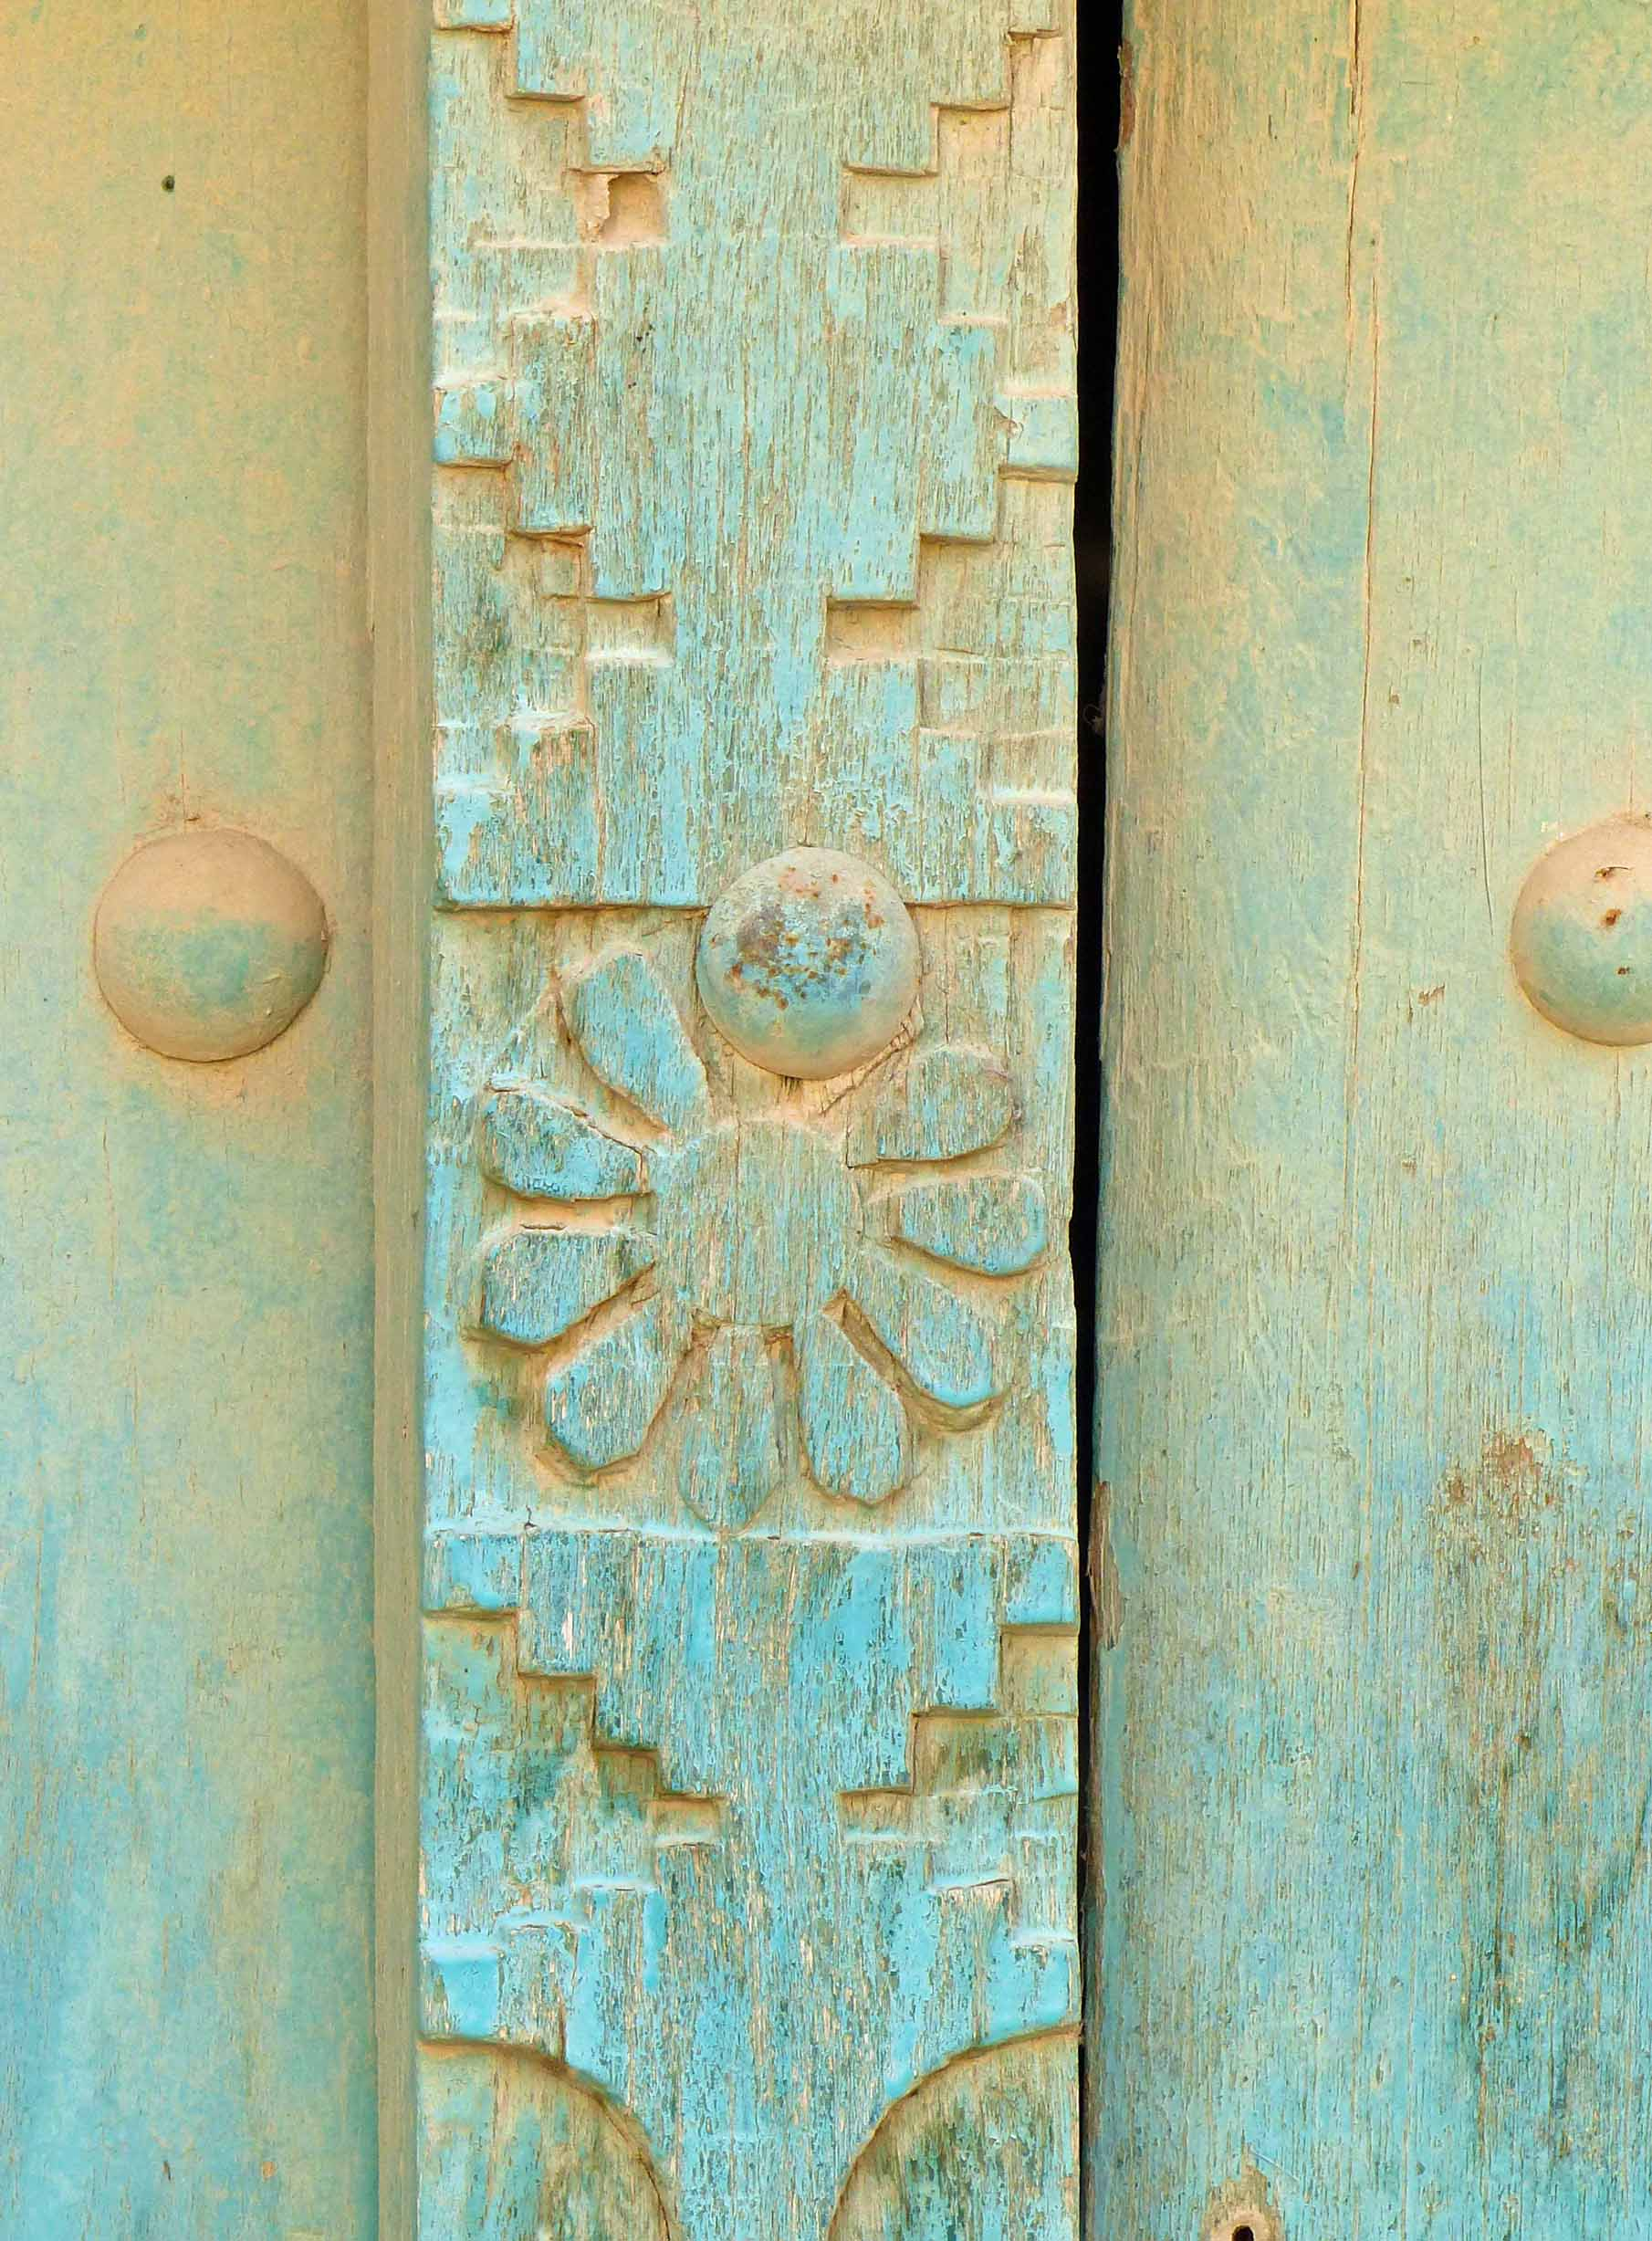 Carved wood painted turquoise